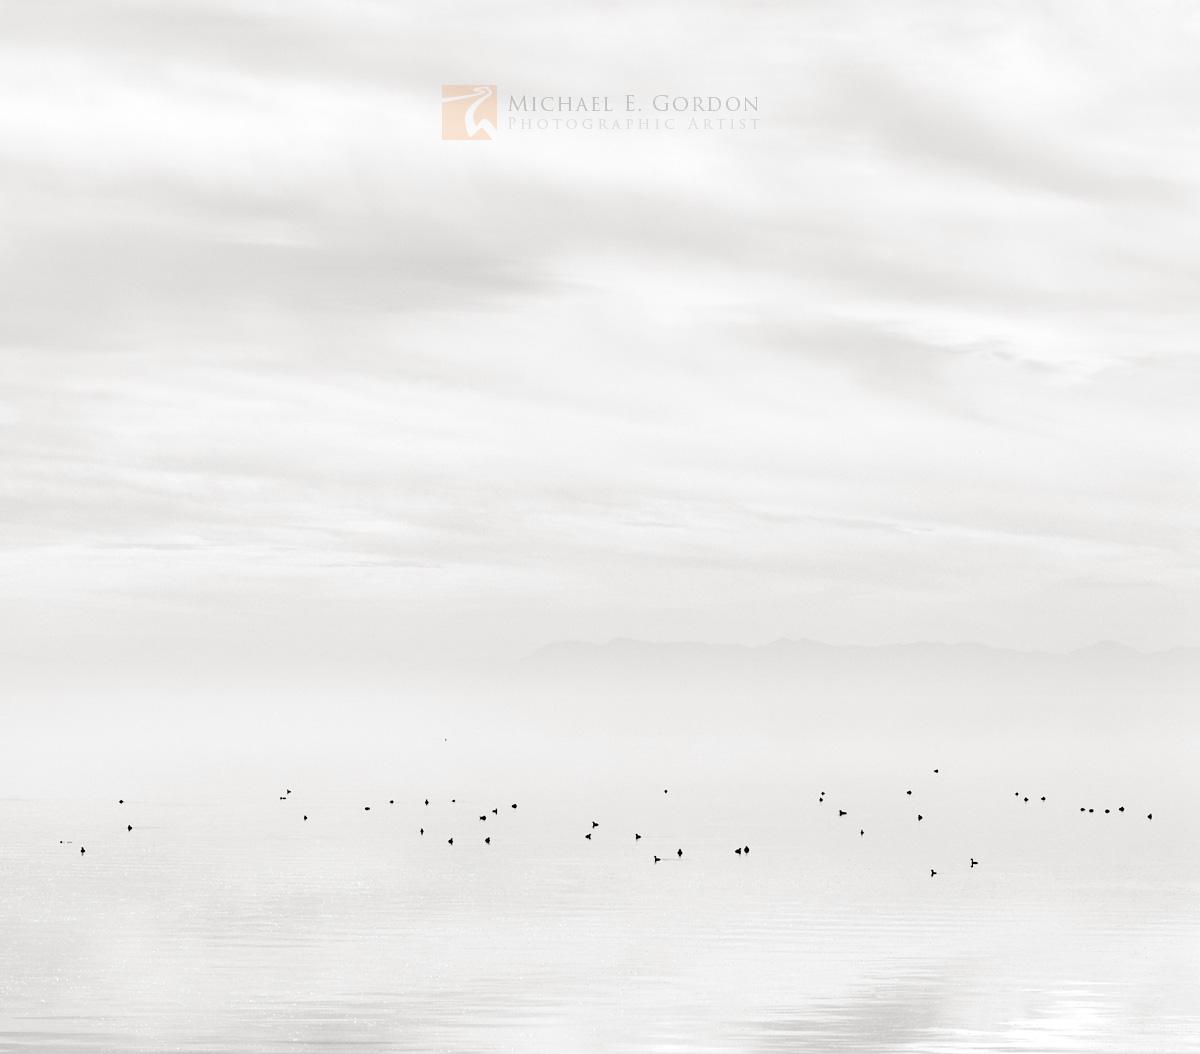 EaredGrebes (Podiceps nigricollis) appear to hover in an overcasthigh key atmosphere.Logos and watermarks are...